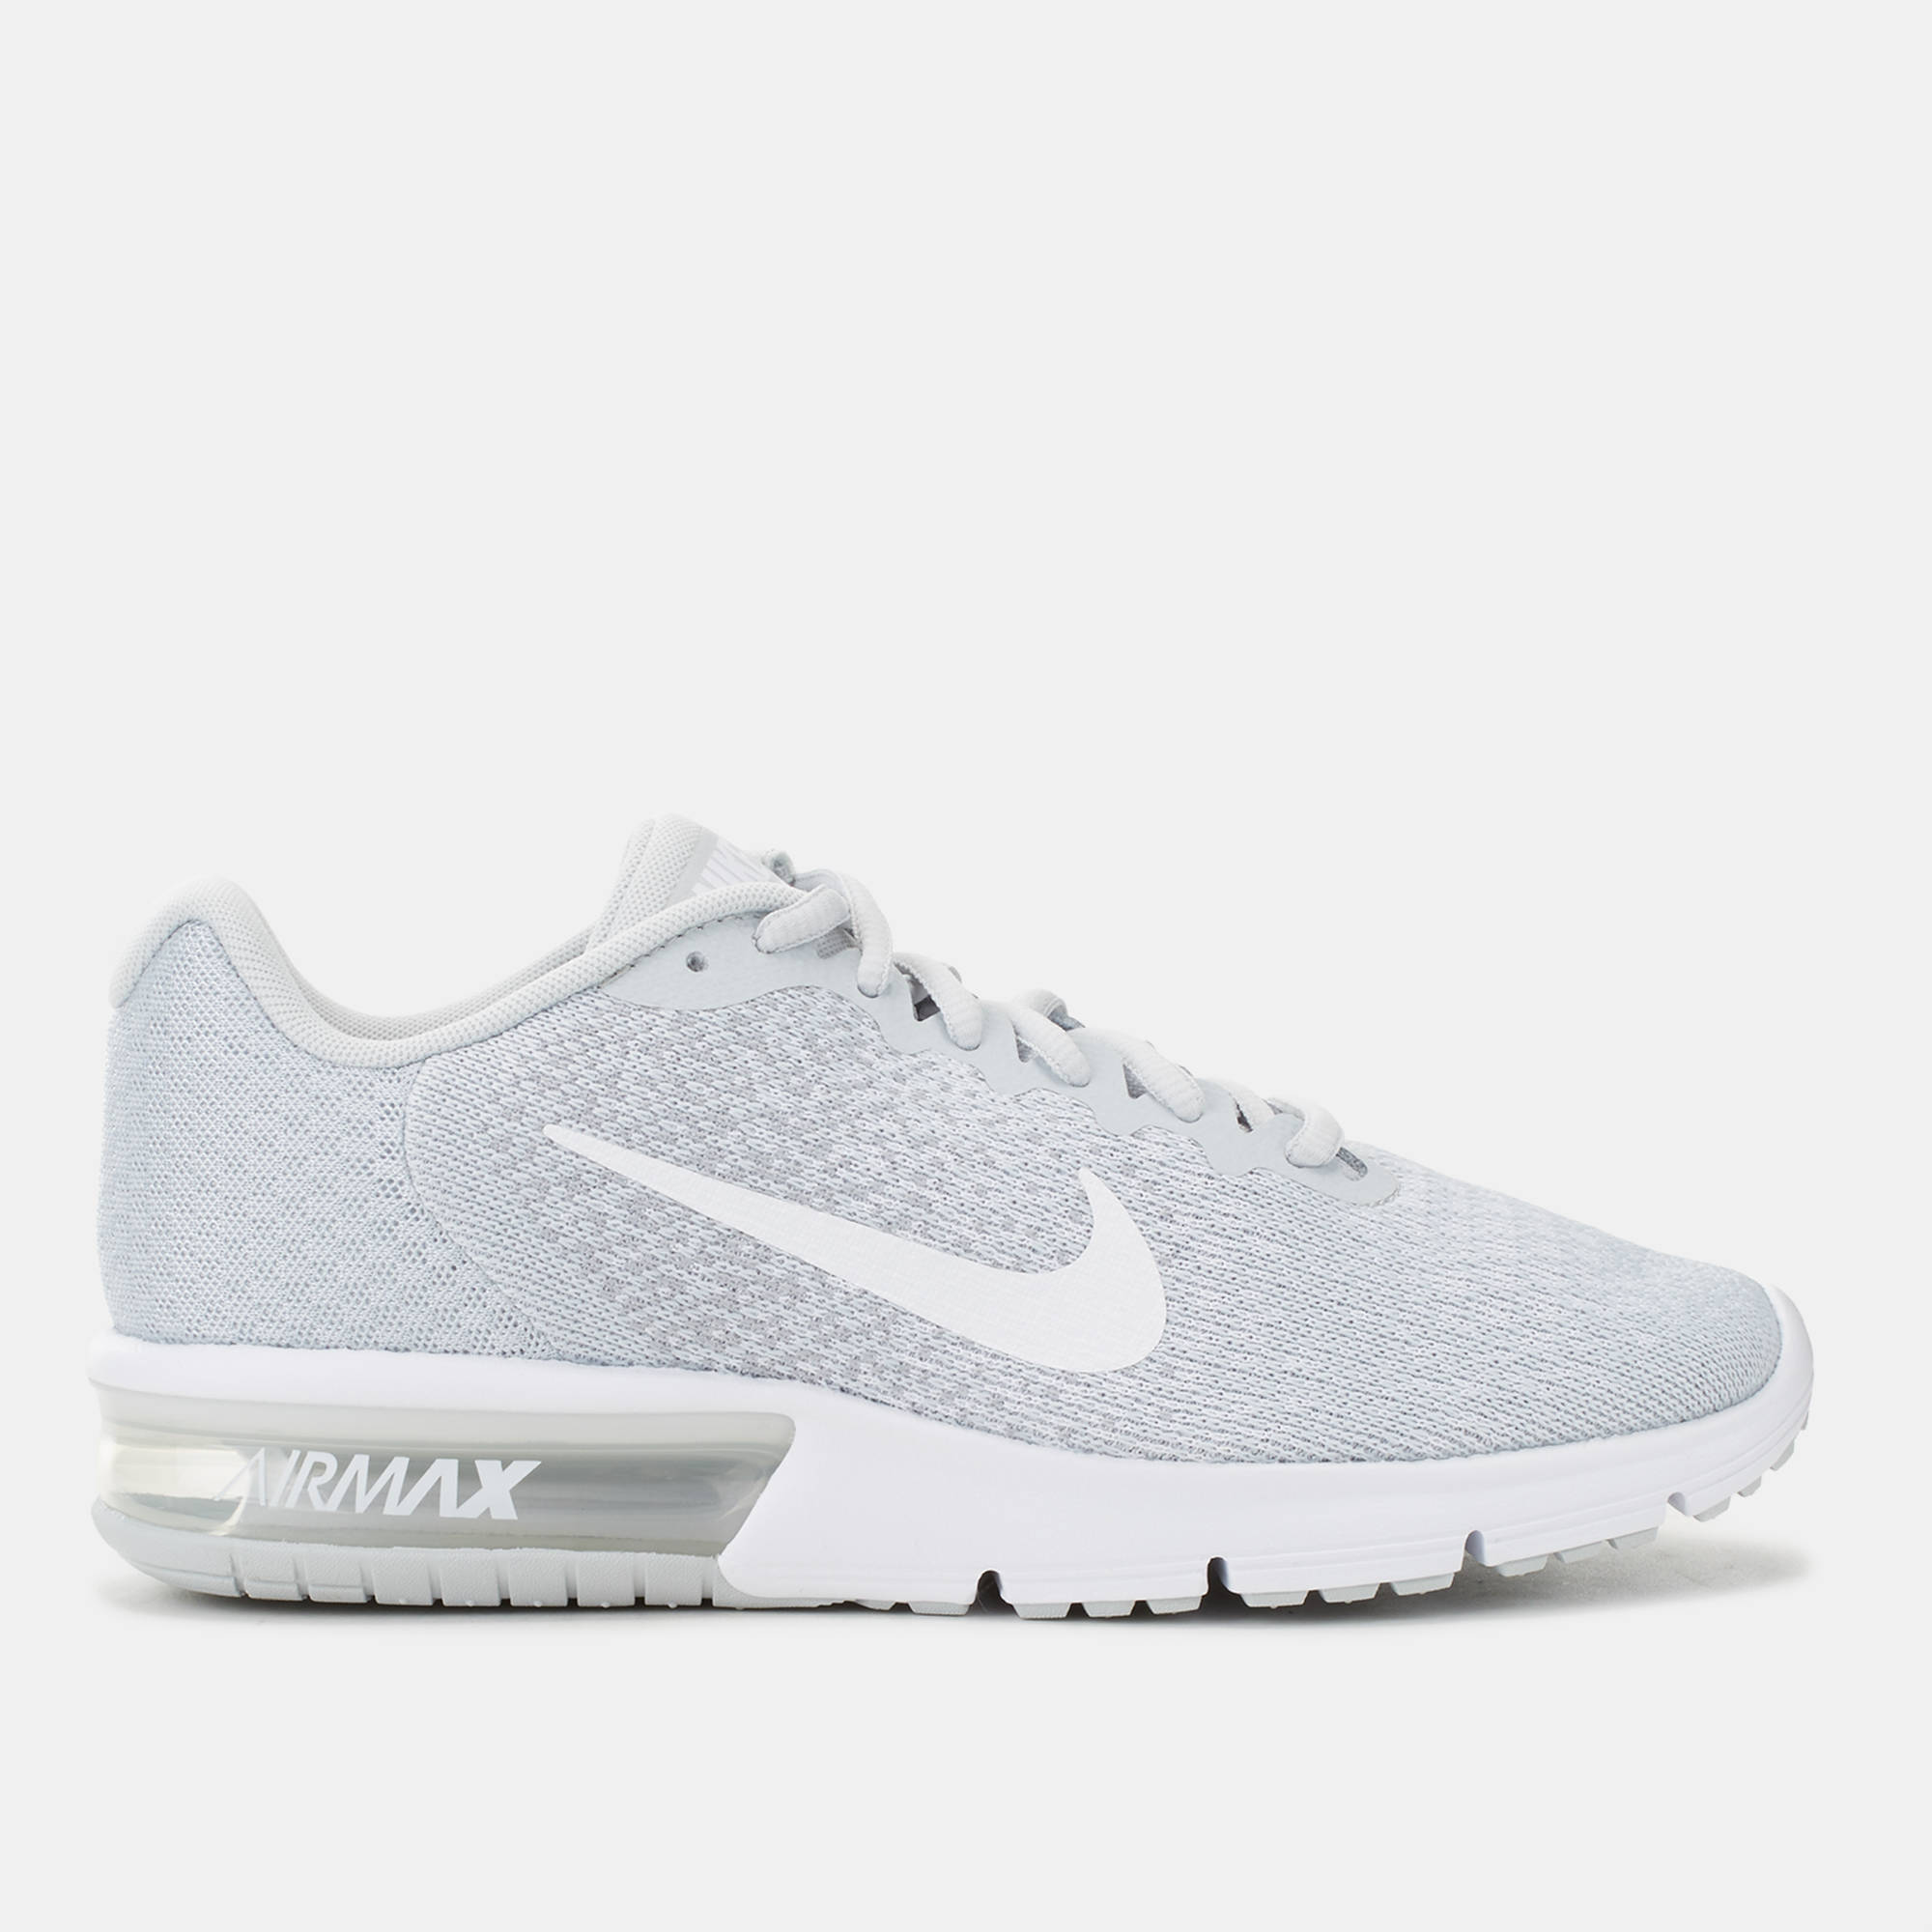 Nike Air Max Sequent 2 Women's Running Shoe.